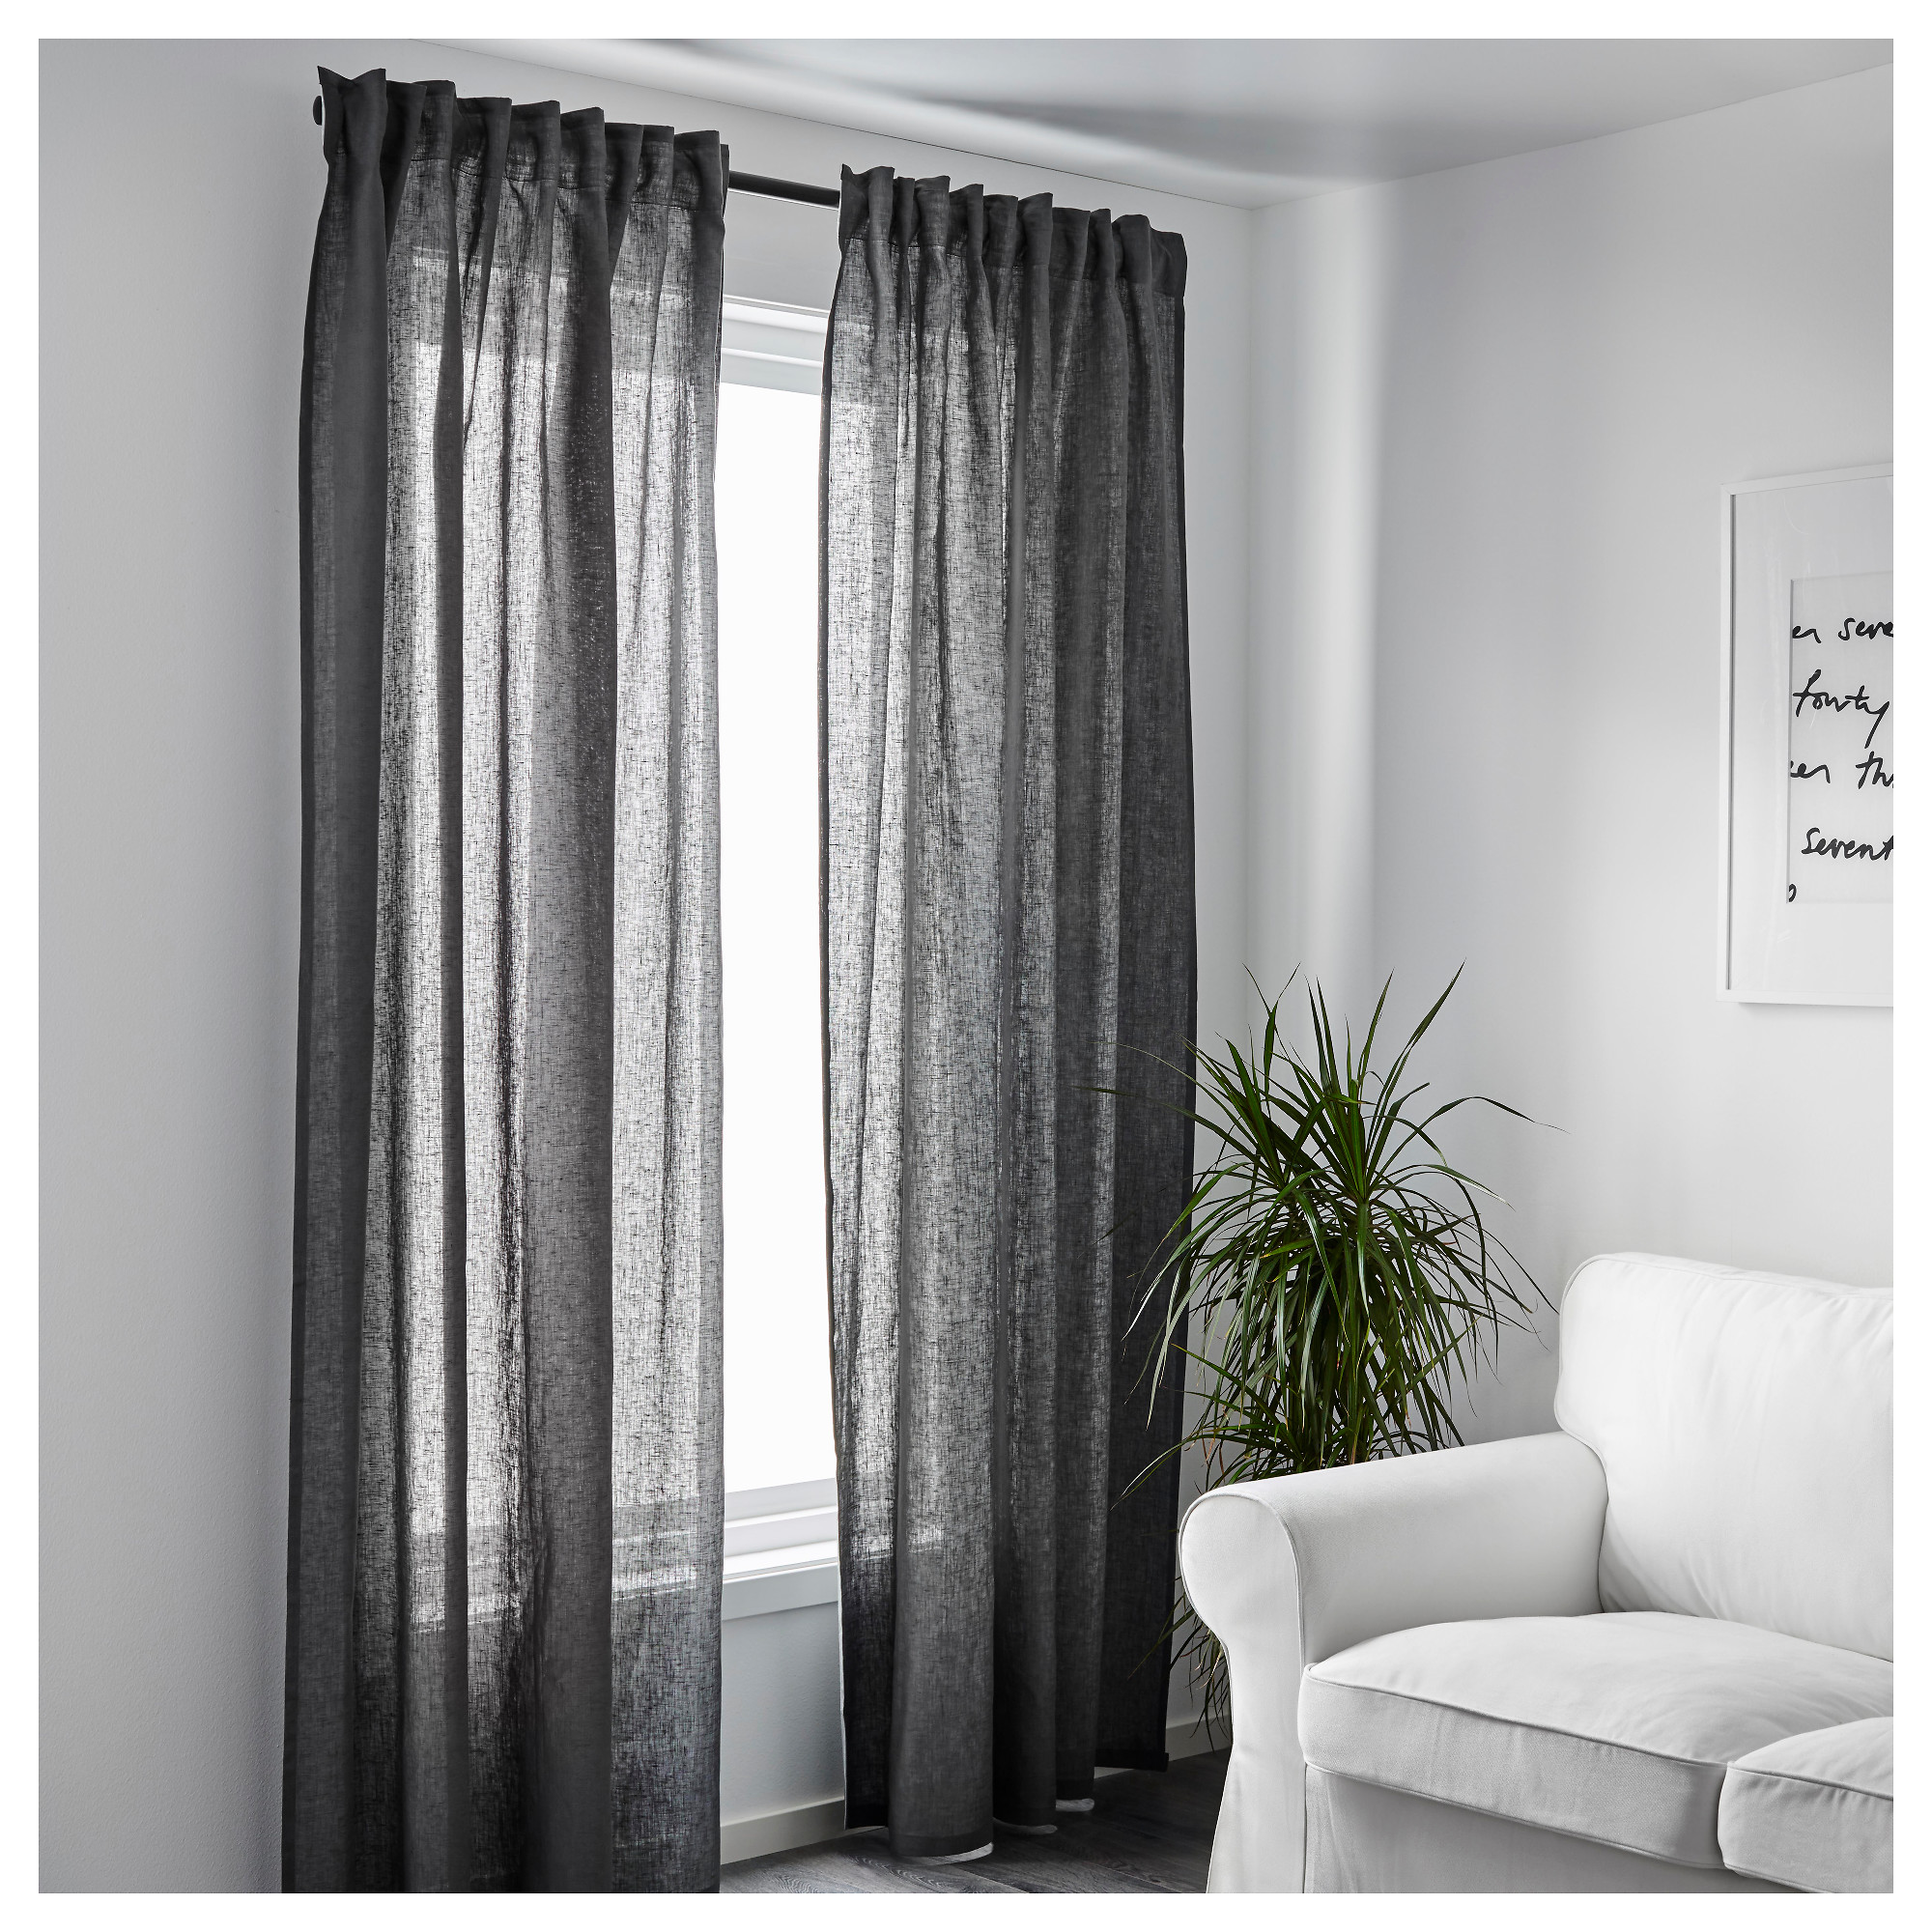 luxury com ikea attemptsatdomestication from image tutsai curtains outdoor new of inspirational drapes source